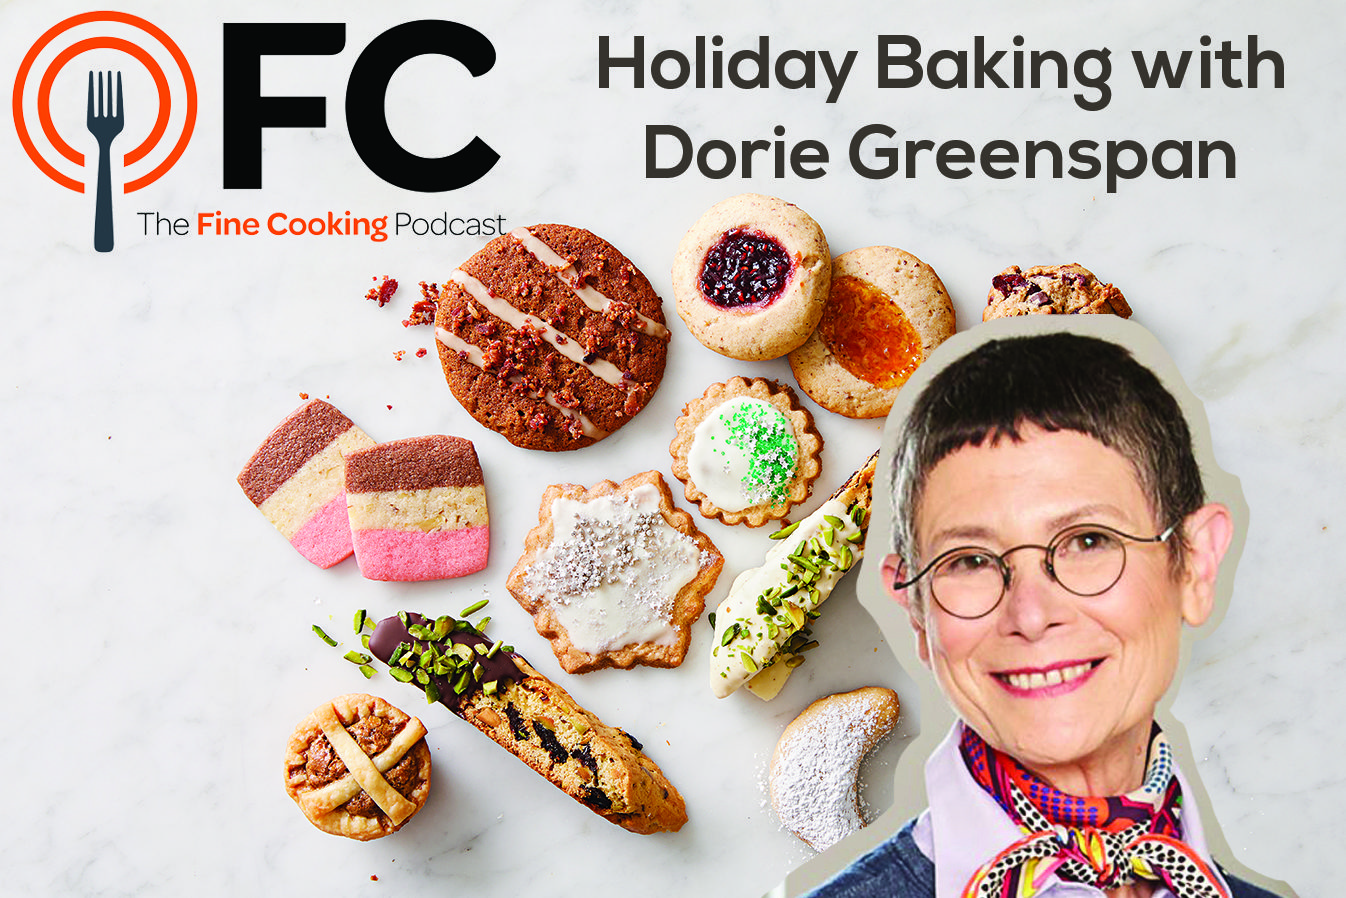 Podcast Episode 24: Holiday Baking with Dorie Greenspan